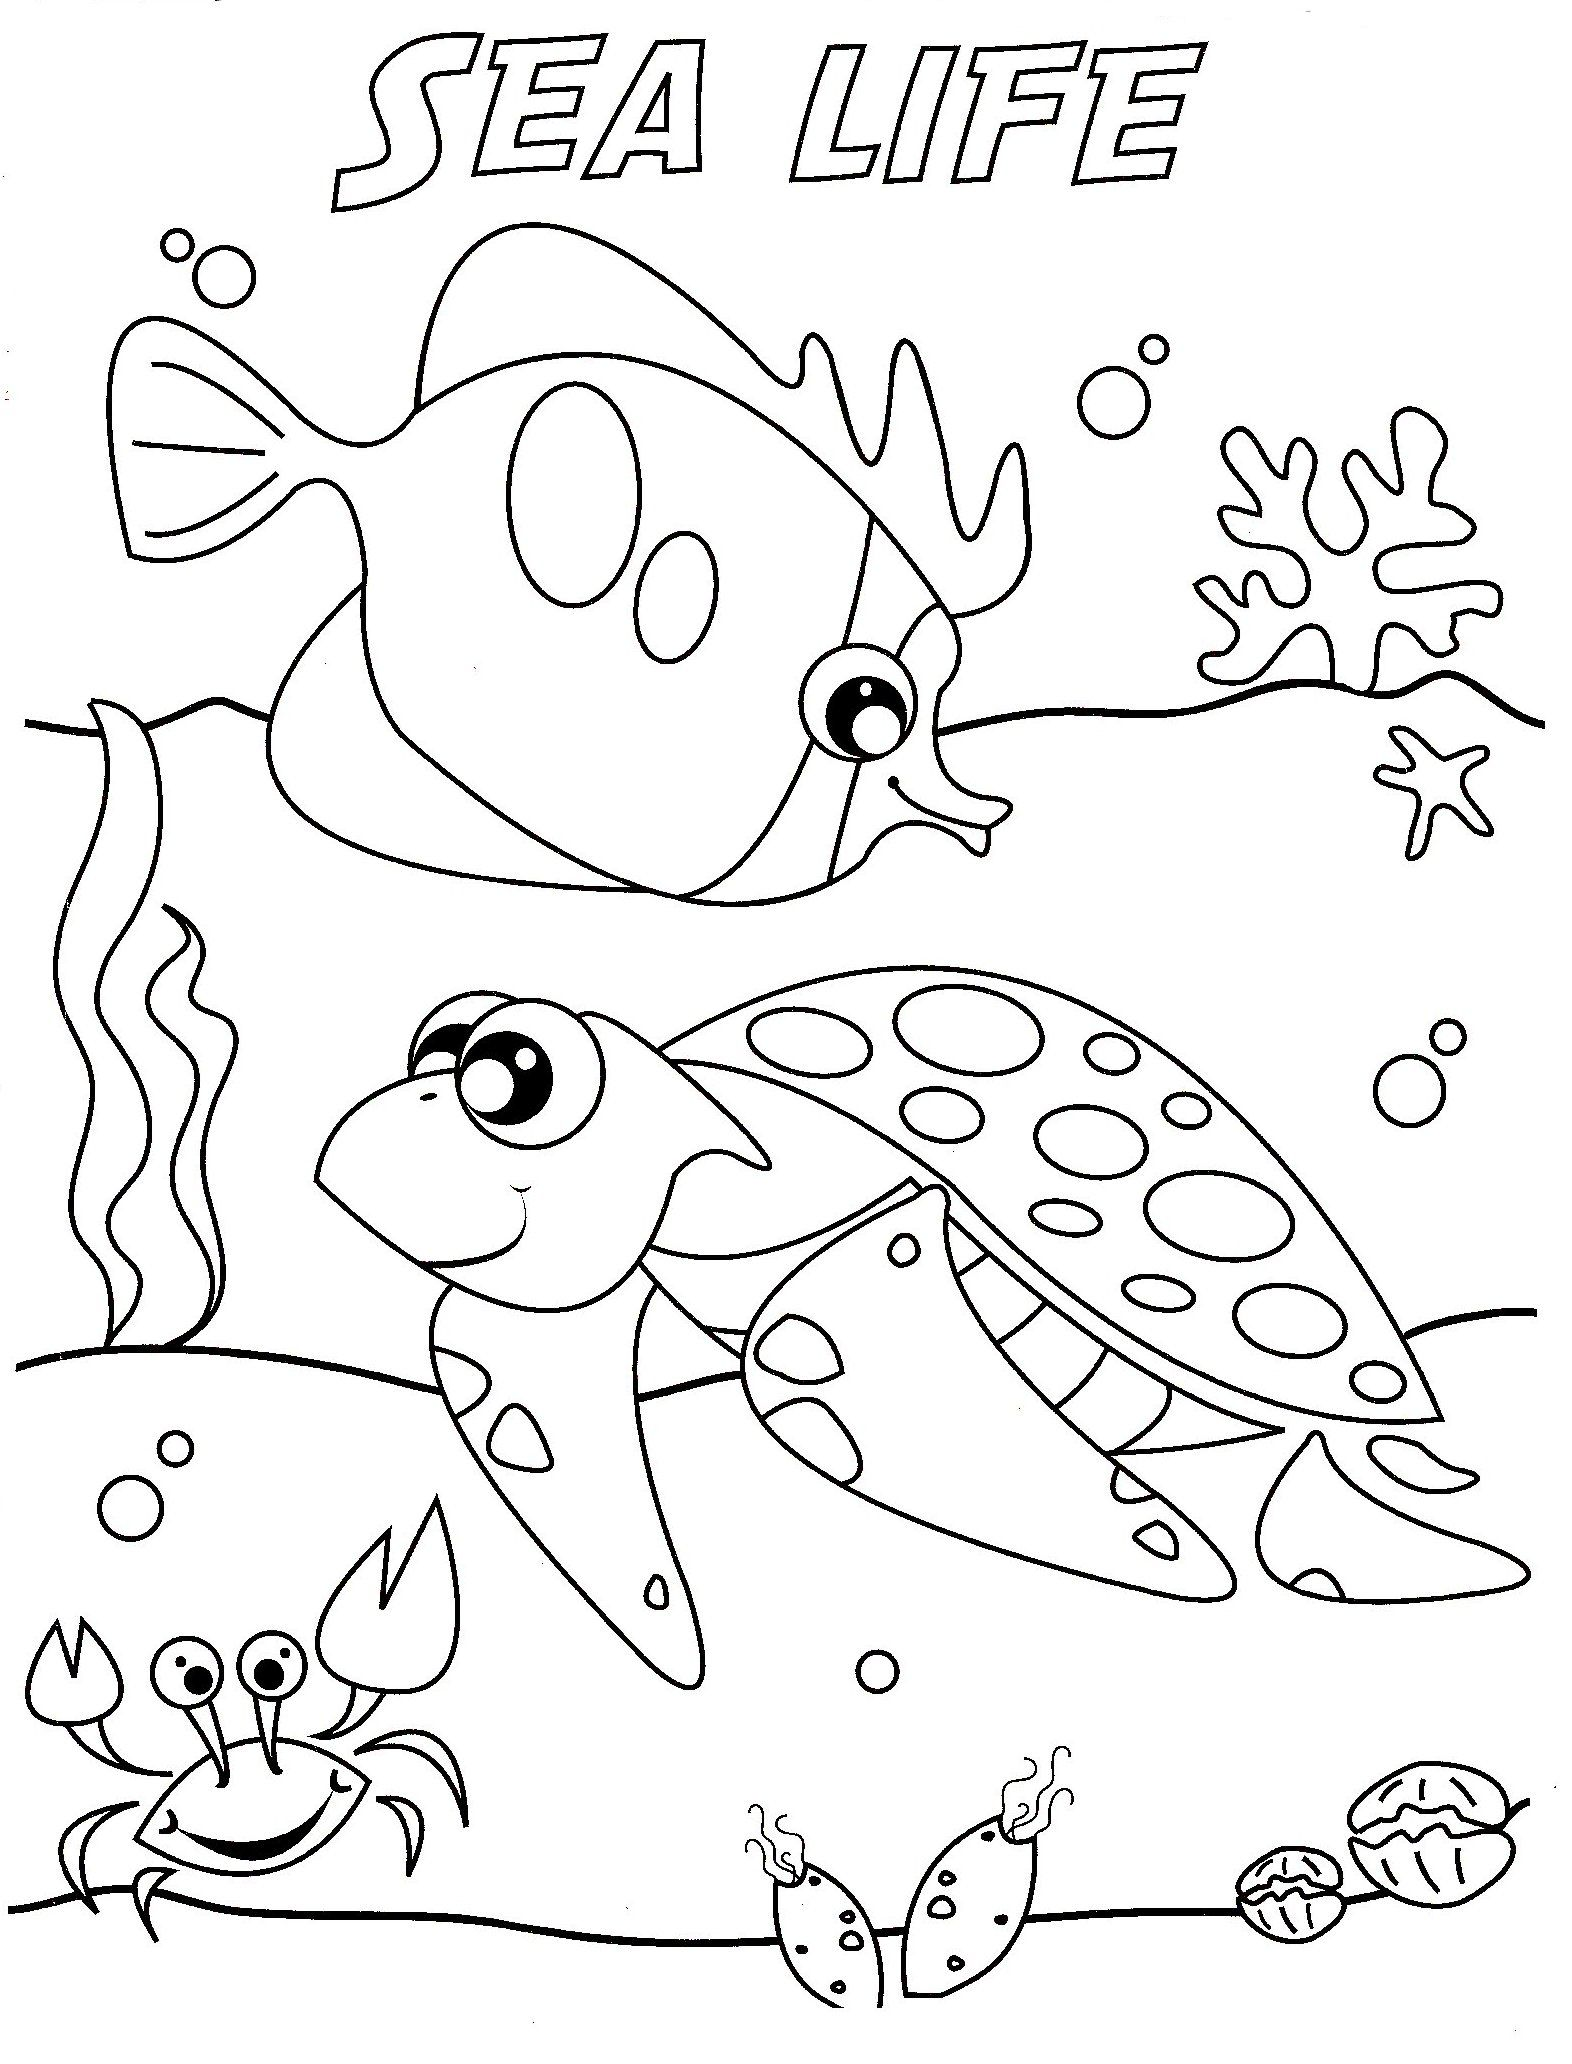 ocean life coloring pages Ocean life coloring pages to download and print for free | Home  ocean life coloring pages